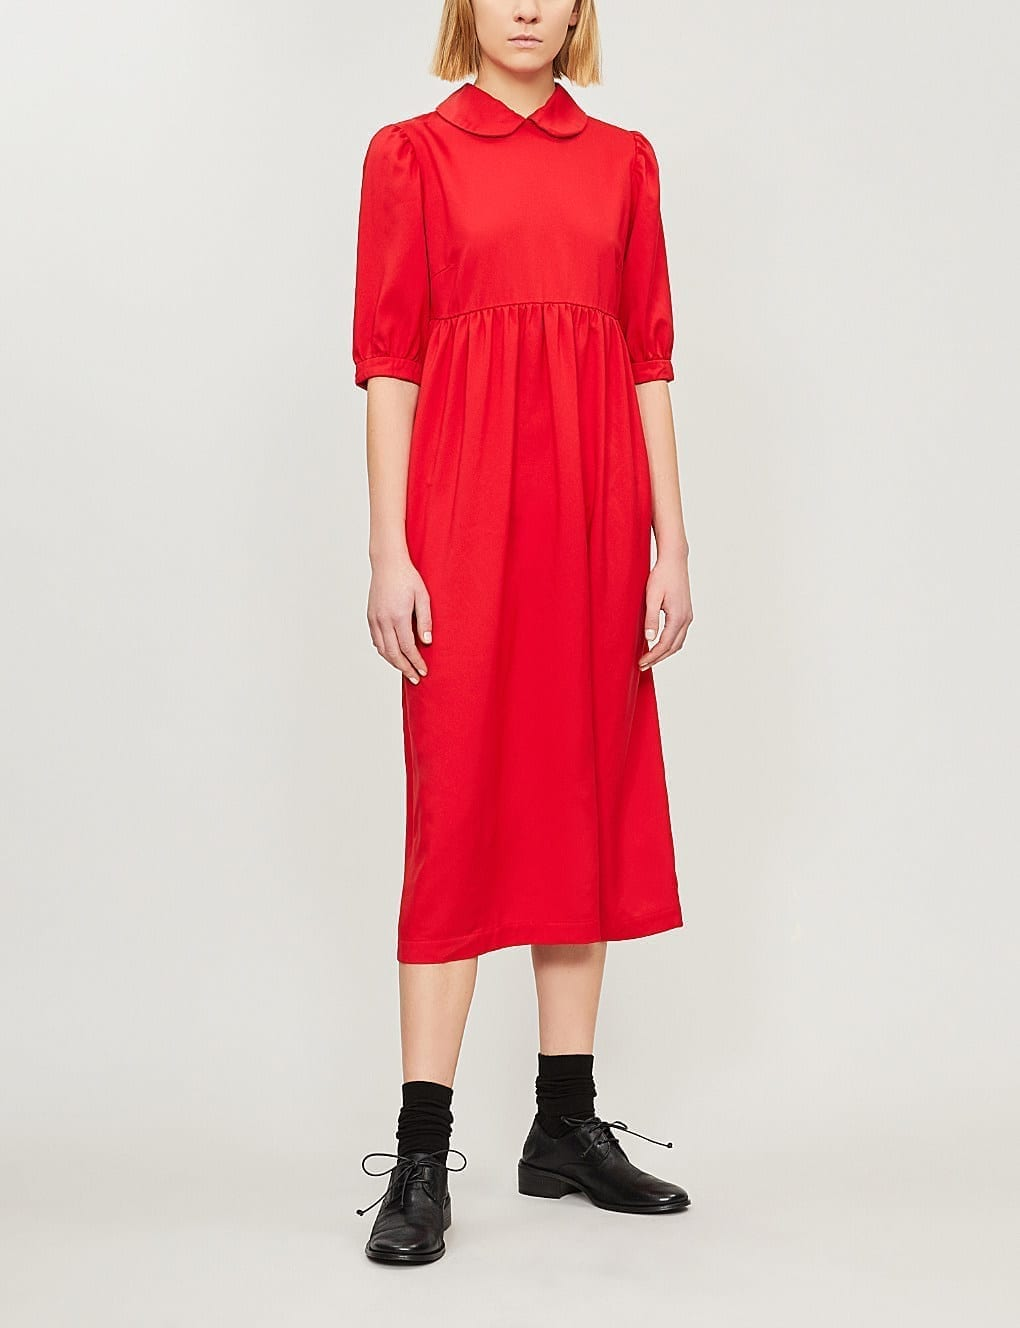 COMME DES GARCONS GIRL Smocked Woven Red Dress